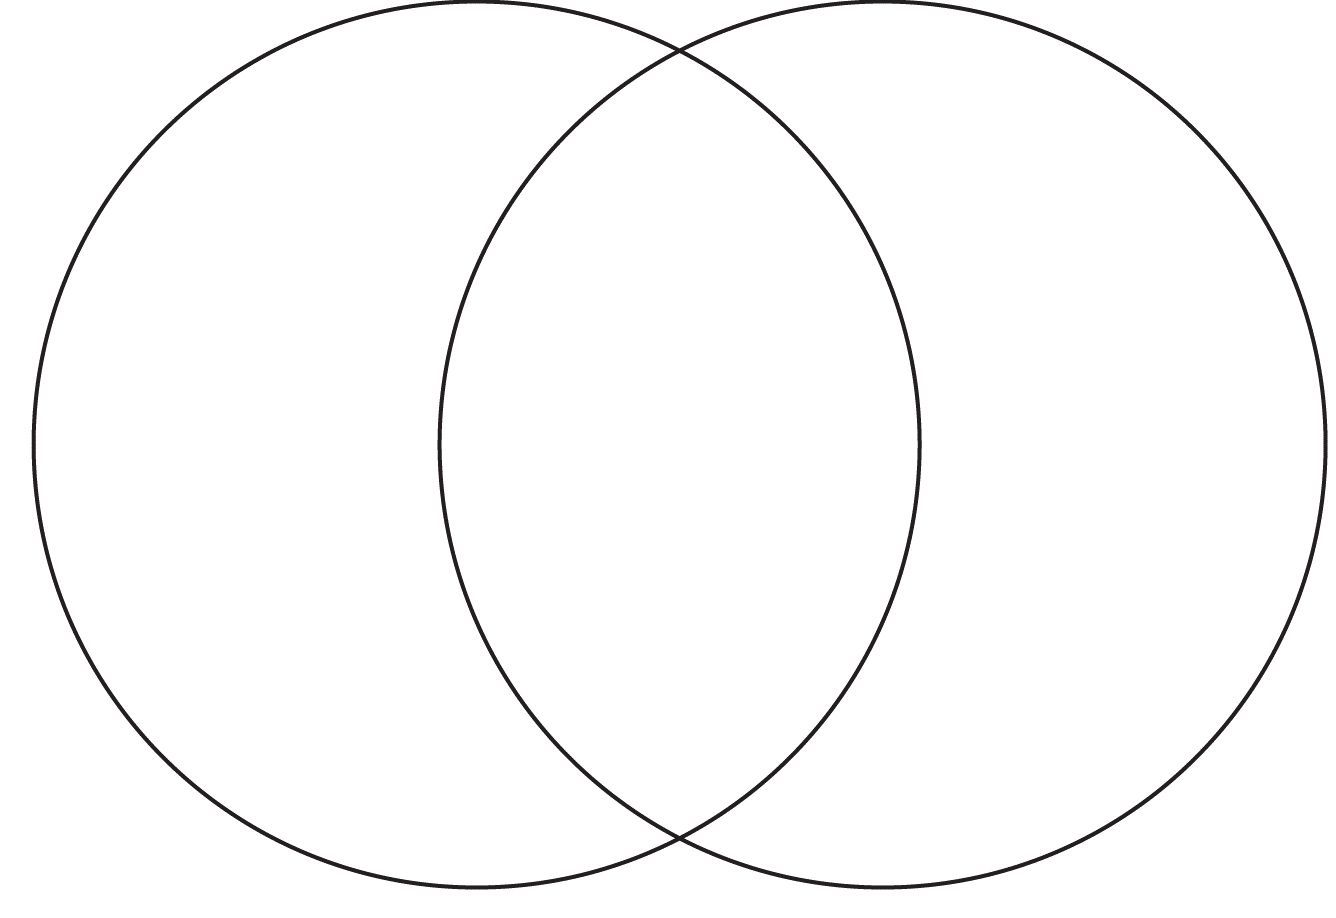 6 Circle Writable Venn Diagram Example Class For Library Management System In Uml If Any Moron Claims Reddit Was Biased Towards Hillary